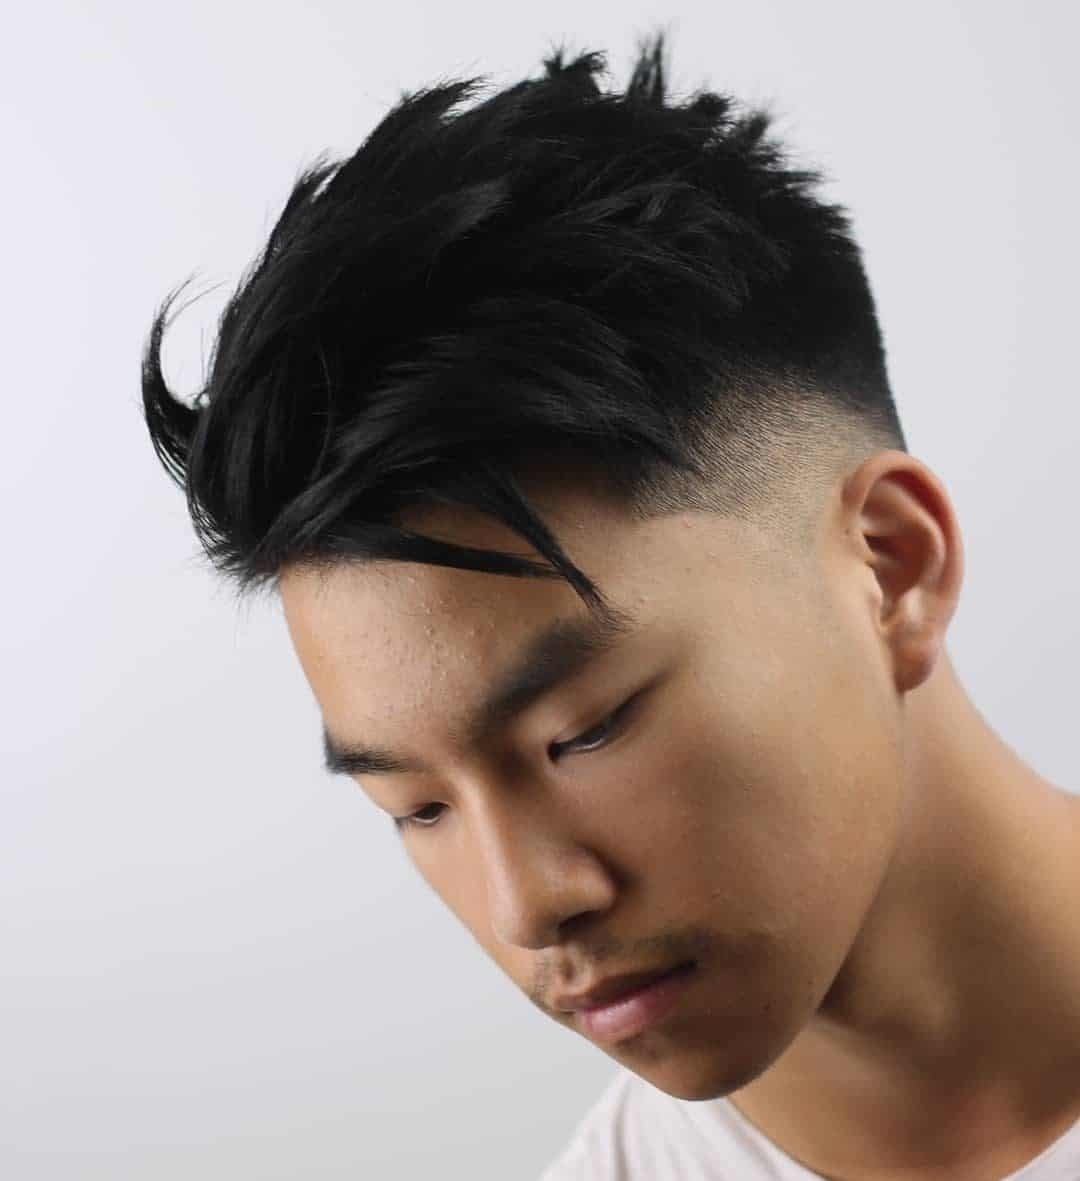 Best Hairstyles For Asian Men intended for Amazing Asian Hairstyles Men 2019